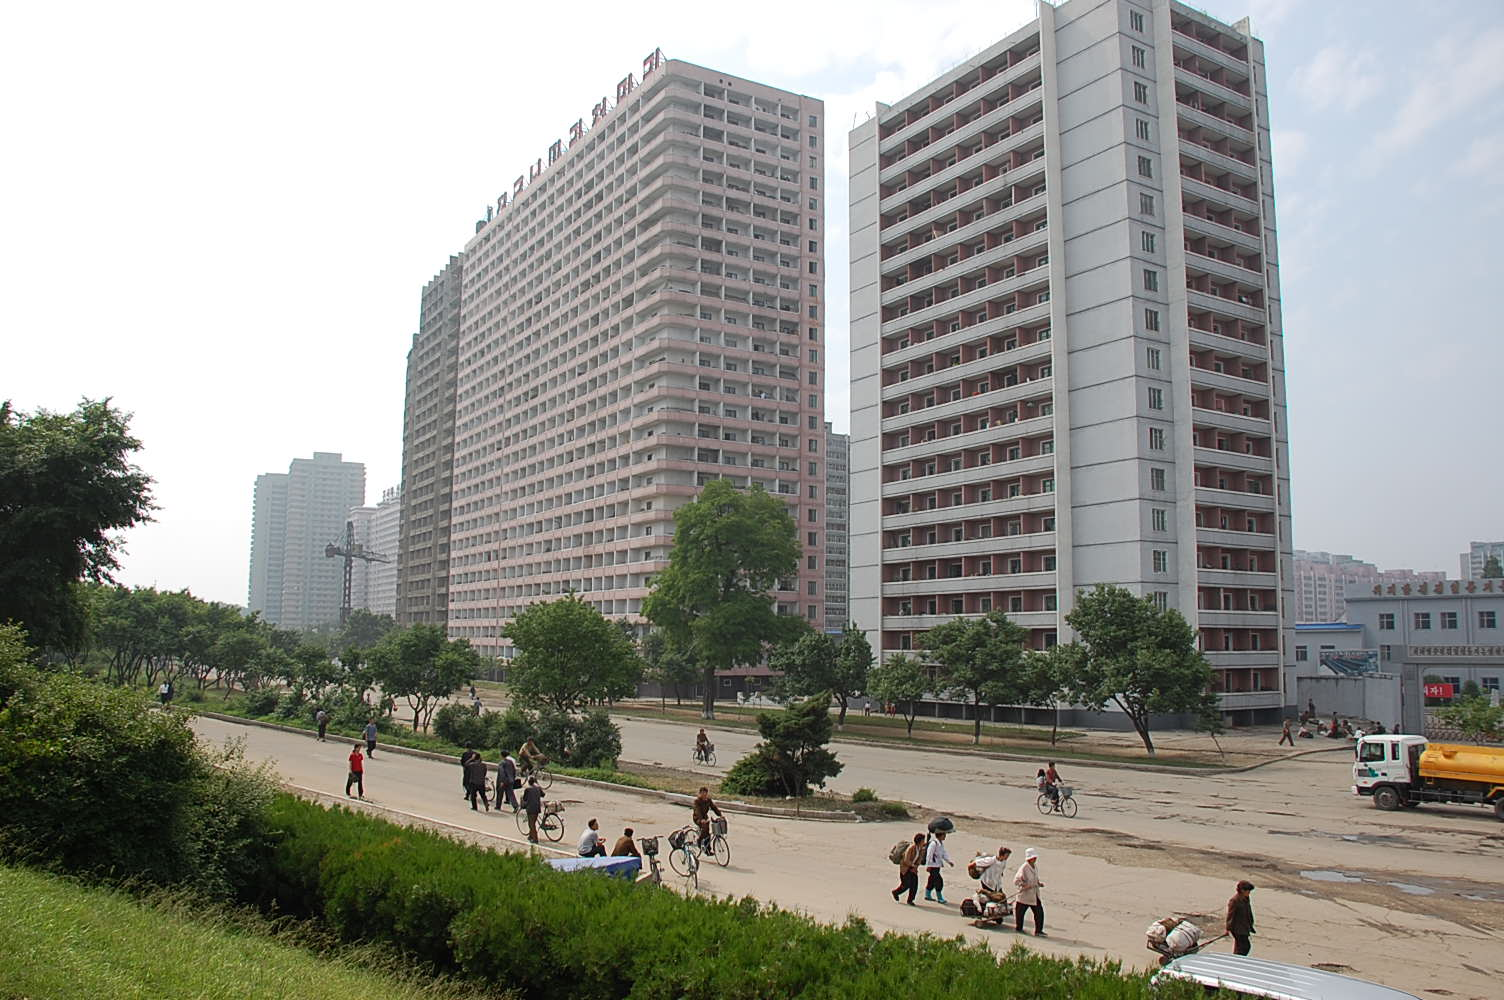 Description north korea pyongyang buildings and passengers 01 jpg